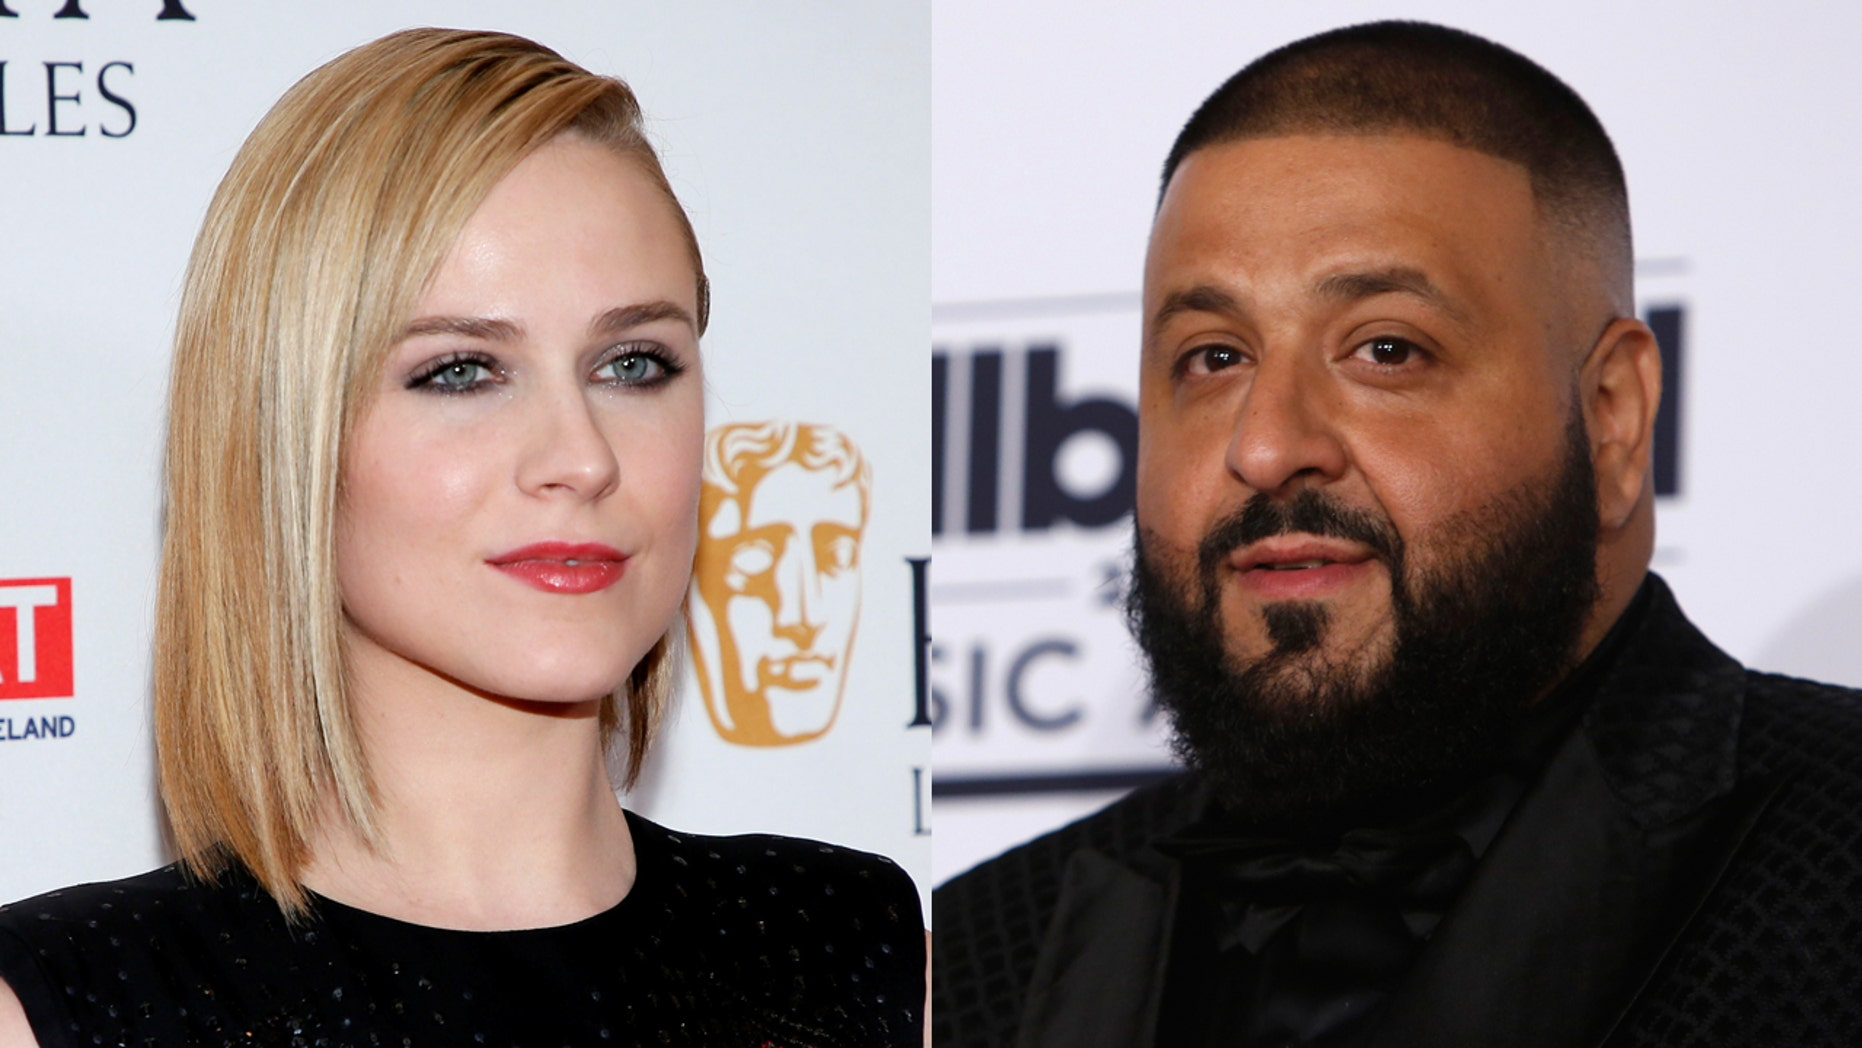 Evan Rachel Wood calls out DJ Khaled for controversial comments about regarding oral sex.